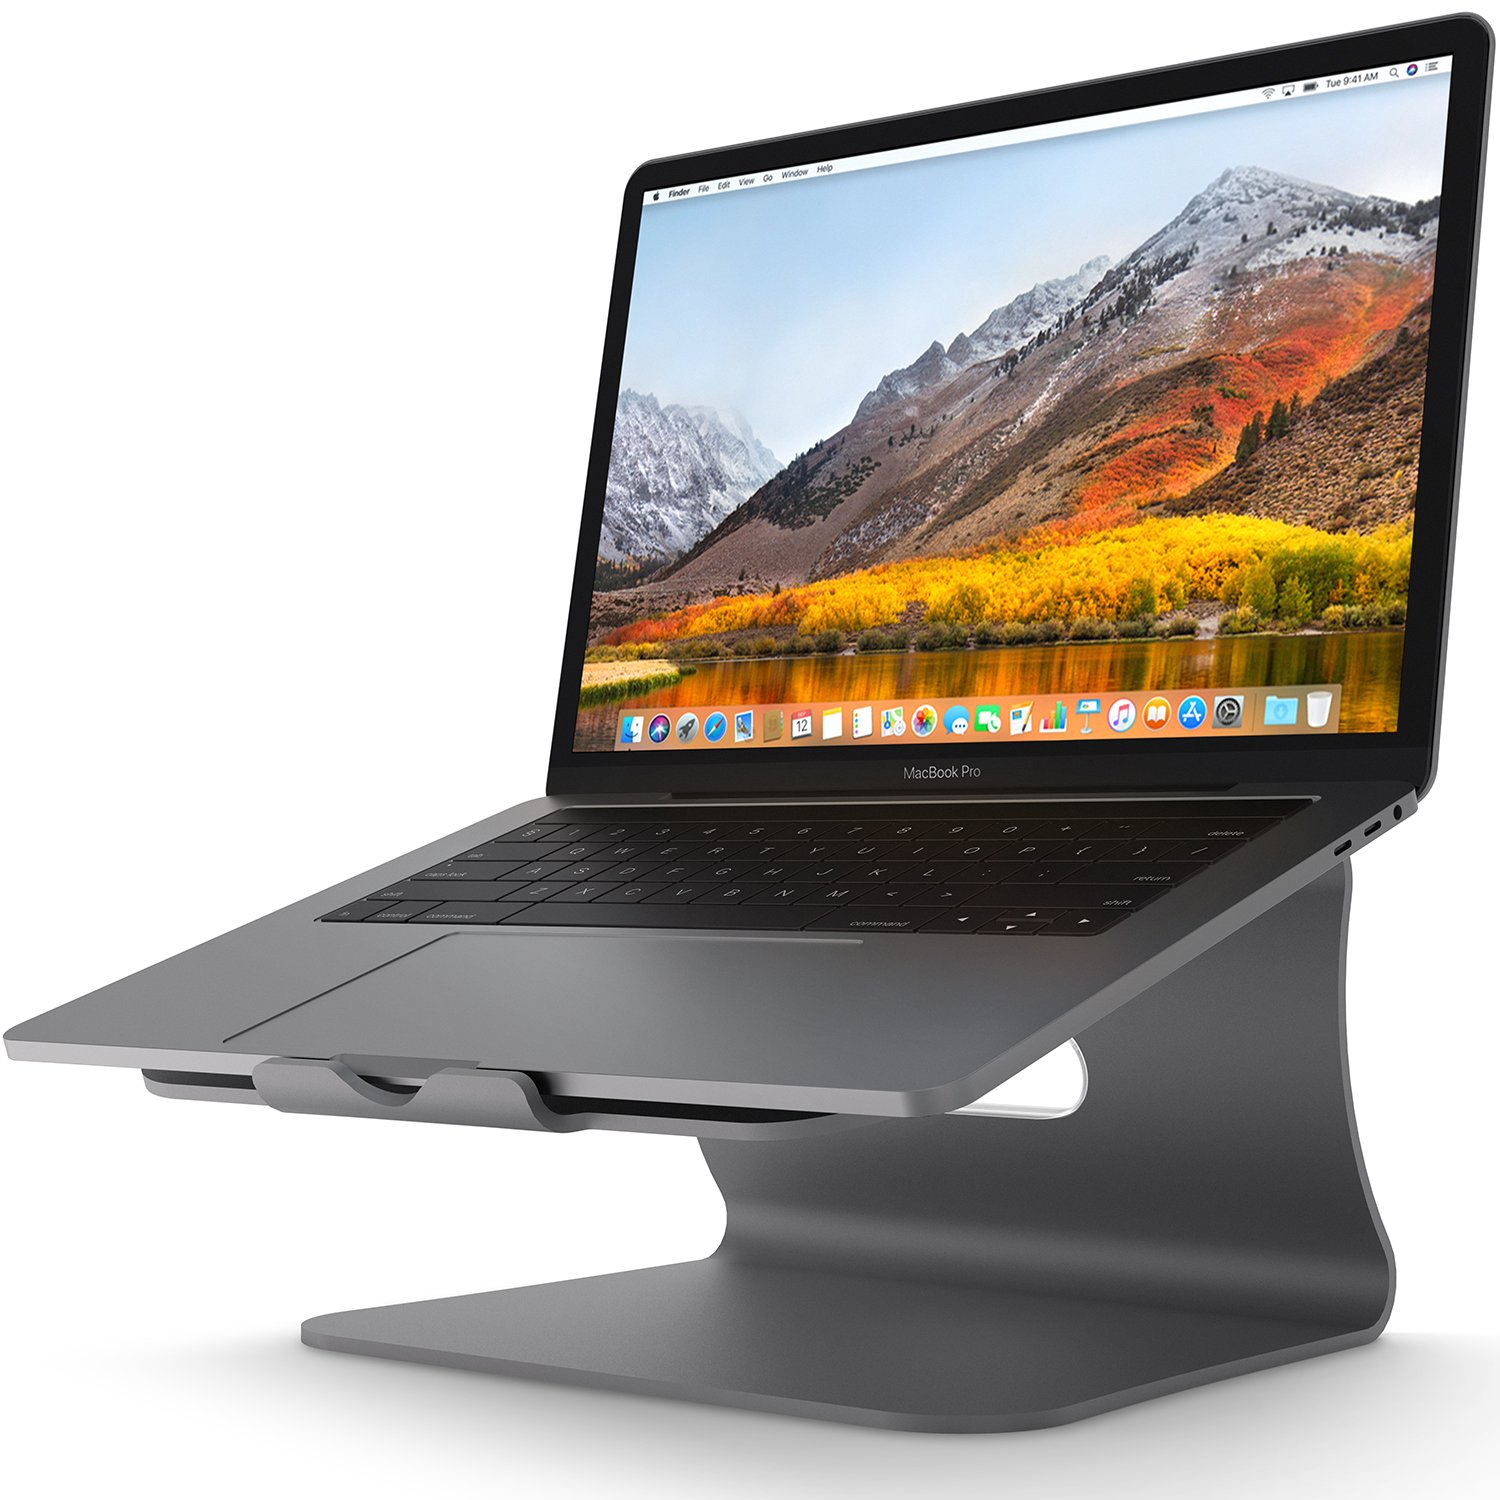 Laptop Stand - Bestand Aluminum Cooling Computer Stand: [Update Version] Stand, Holder for Apple MacBook Air, MacBook Pro, All Notebooks, Grey (Patented) by Bestand